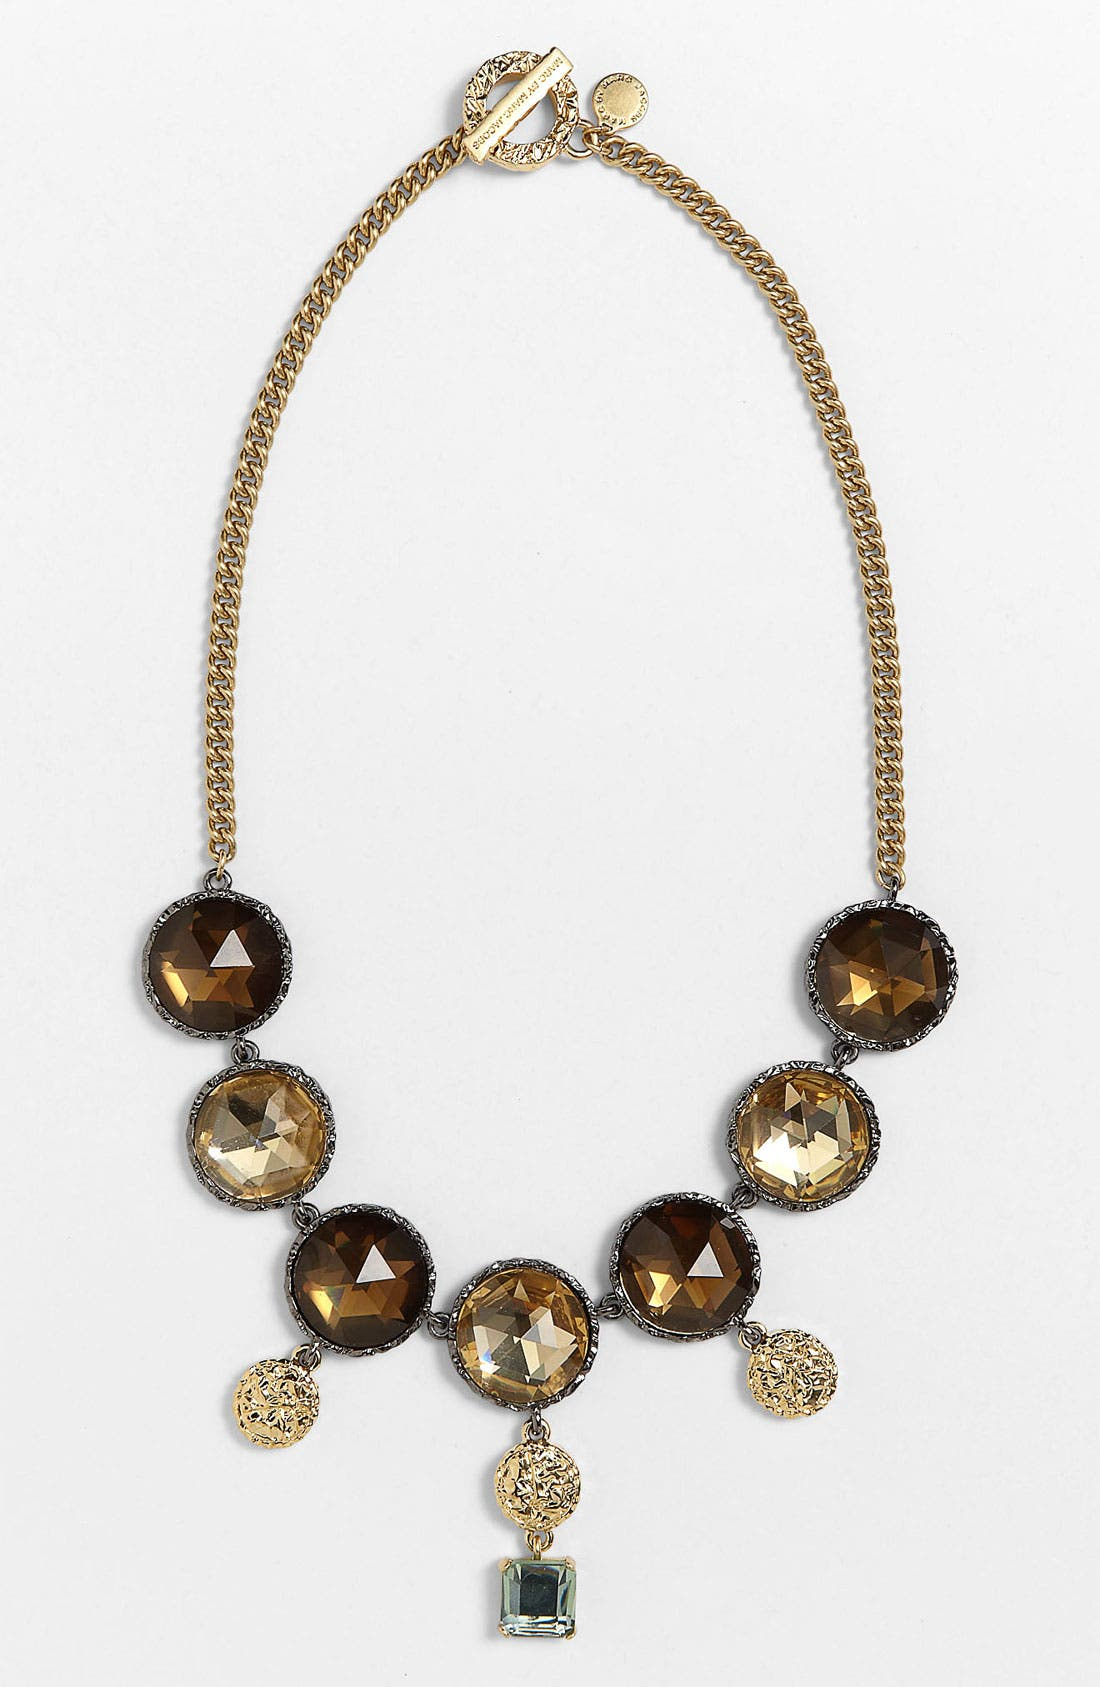 Main Image - MARC BY MARC JACOBS 'Paste & Prints' Bib Necklace